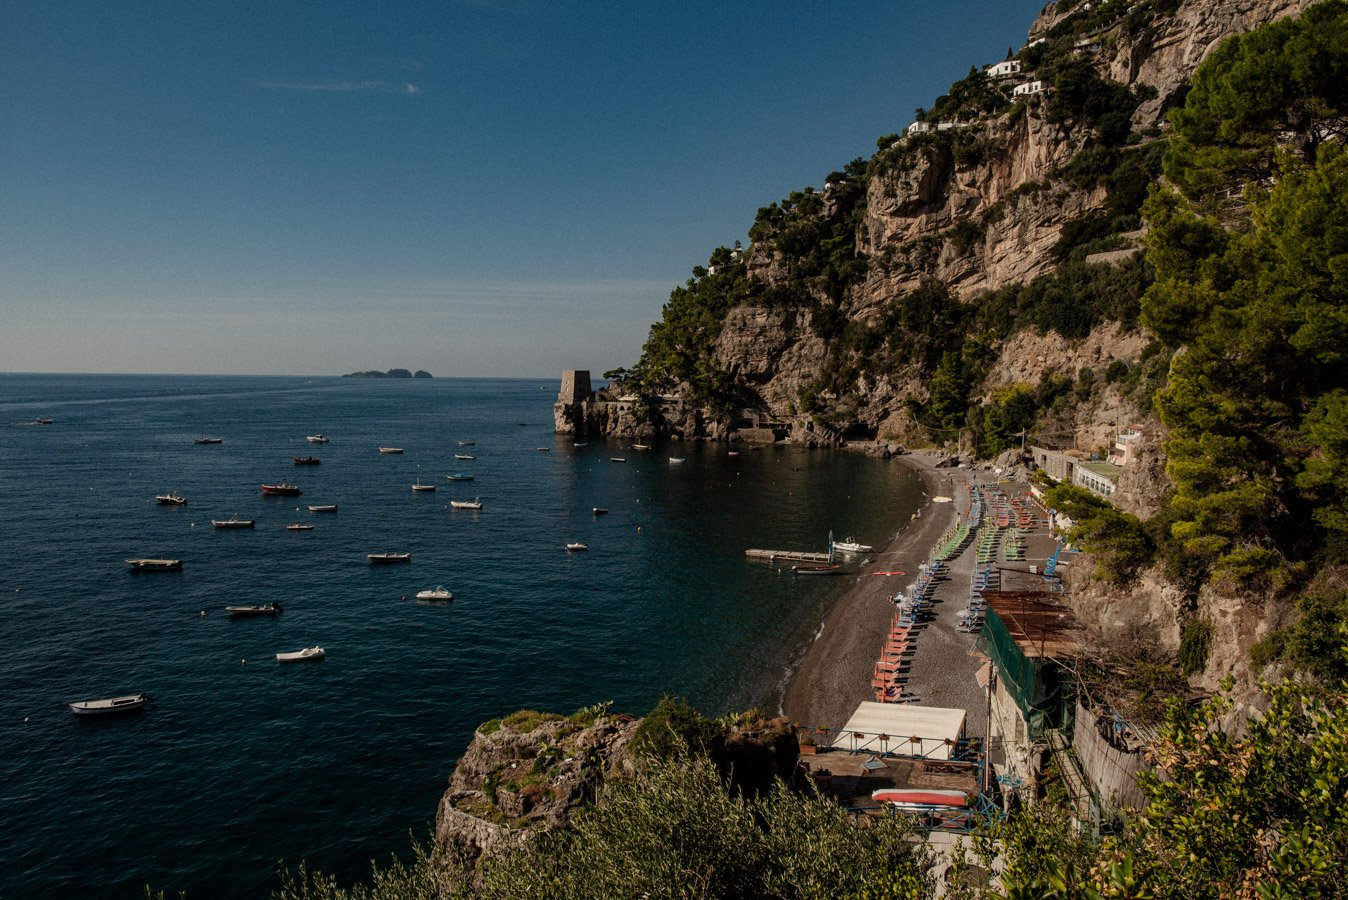 Fornillo Beach is one of the best beaches in Positano